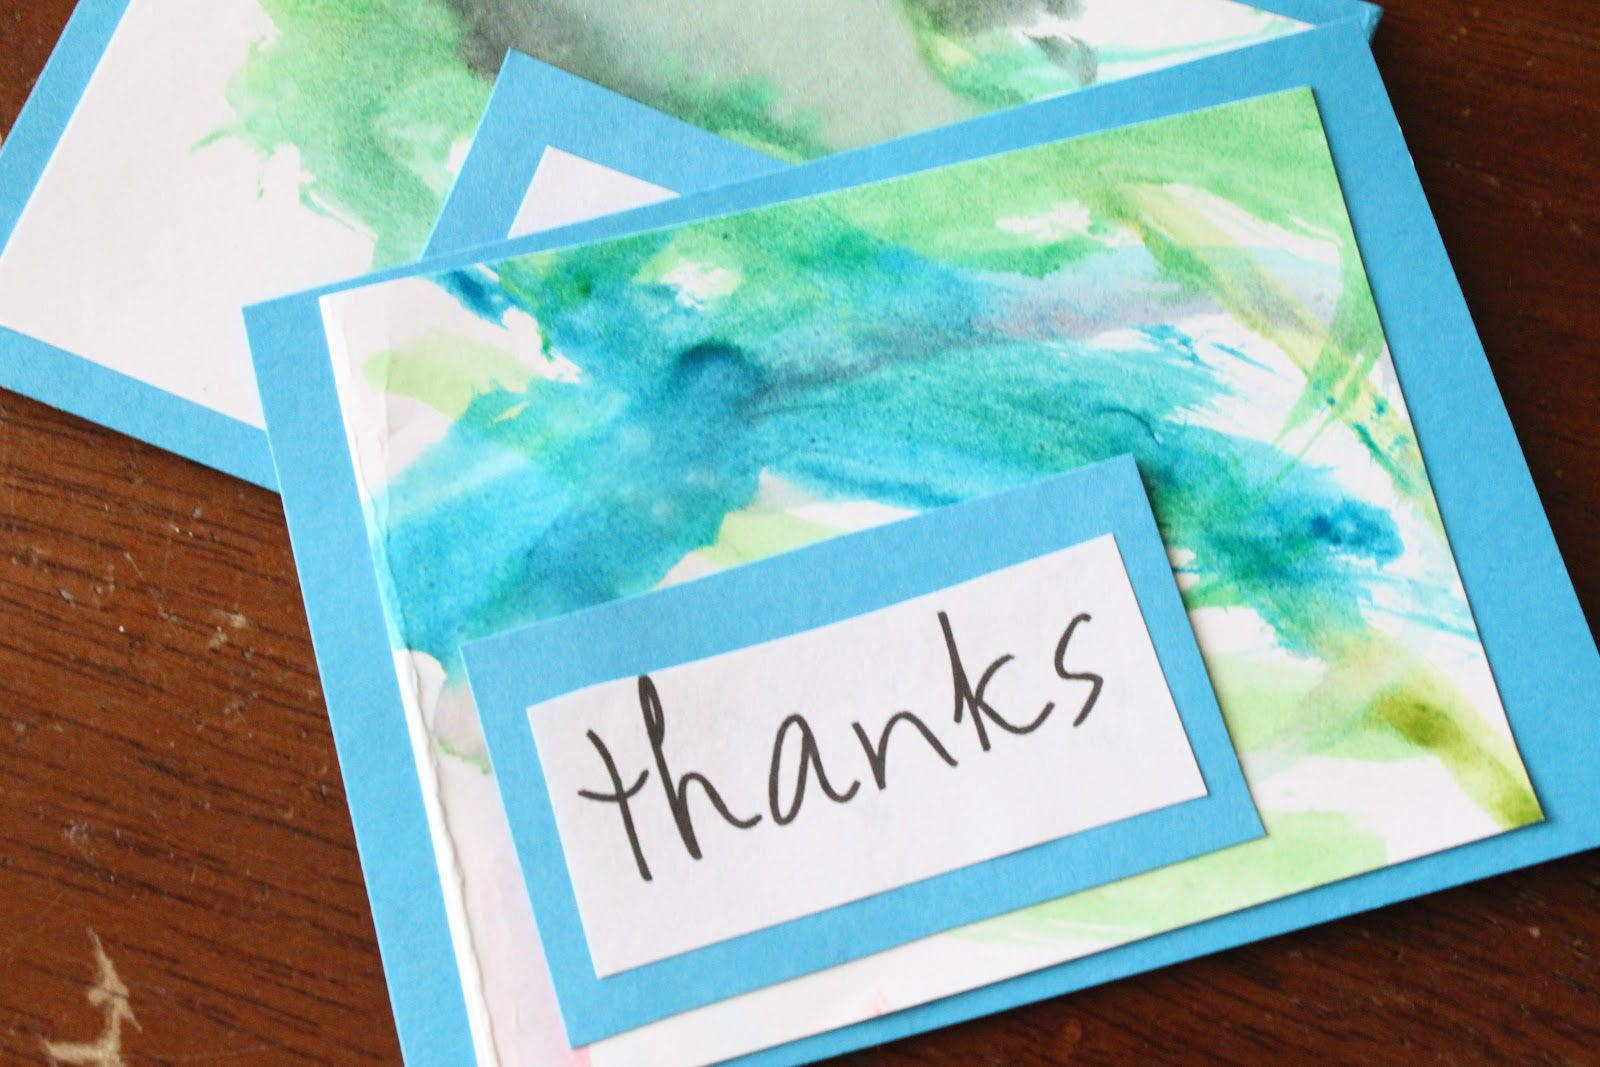 Do it yourself divas diy making a thank you card out of kid art diy making a thank you card out of kid art solutioingenieria Choice Image